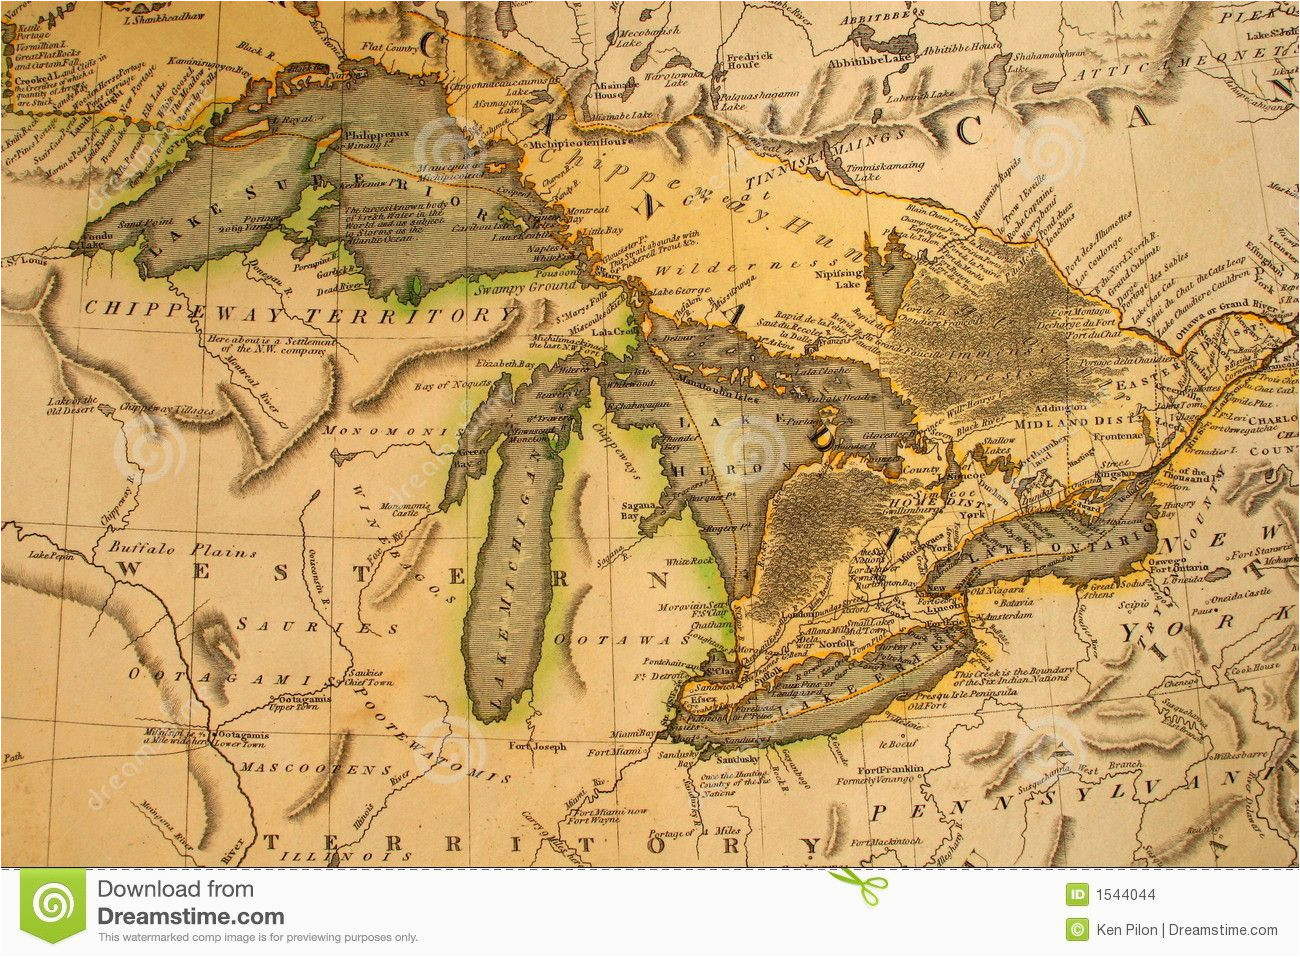 Northern Michigan Lakes Map 35 Awesome Vintage Michigan Maps ... on map art diy, basketball party pinterest, summer arts and crafts pinterest, map art print, map art design, map art tumblr, alice in wonderland cake pinterest, map art flowers, map art love, map art google,